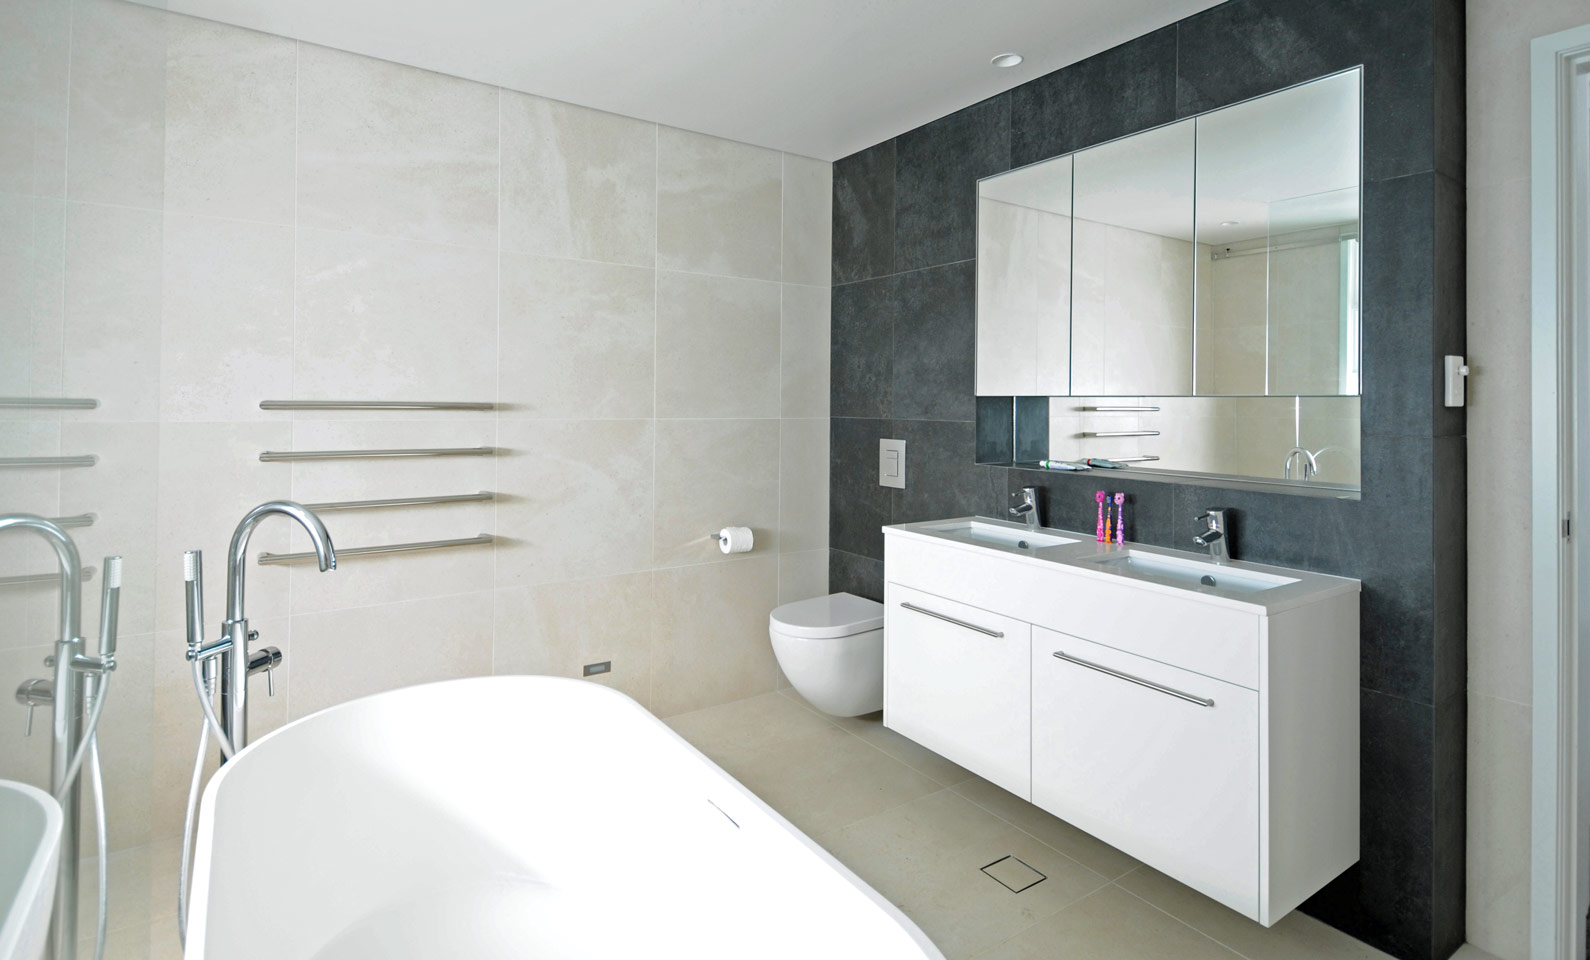 Hopetoun House Vaucluse - Completed Bathroom